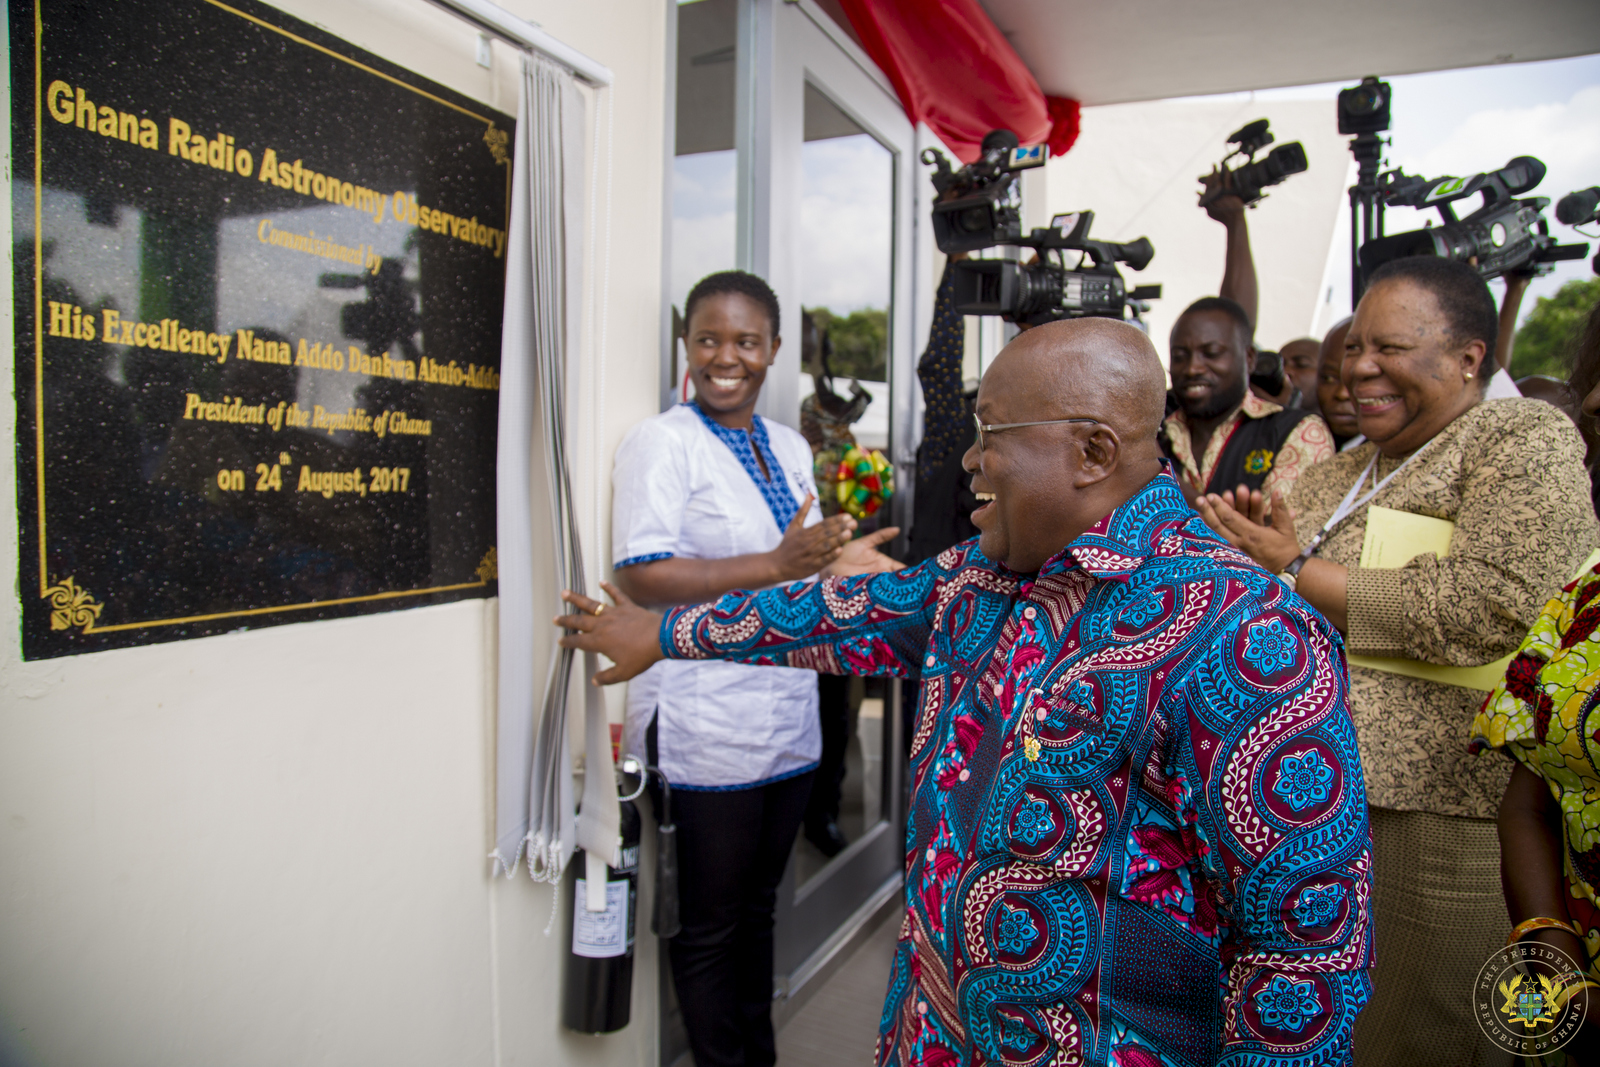 president-akufo-addo-unveiling-the-plaque-for-the-launch-of-the-ghana-radio-astronomy-observatory